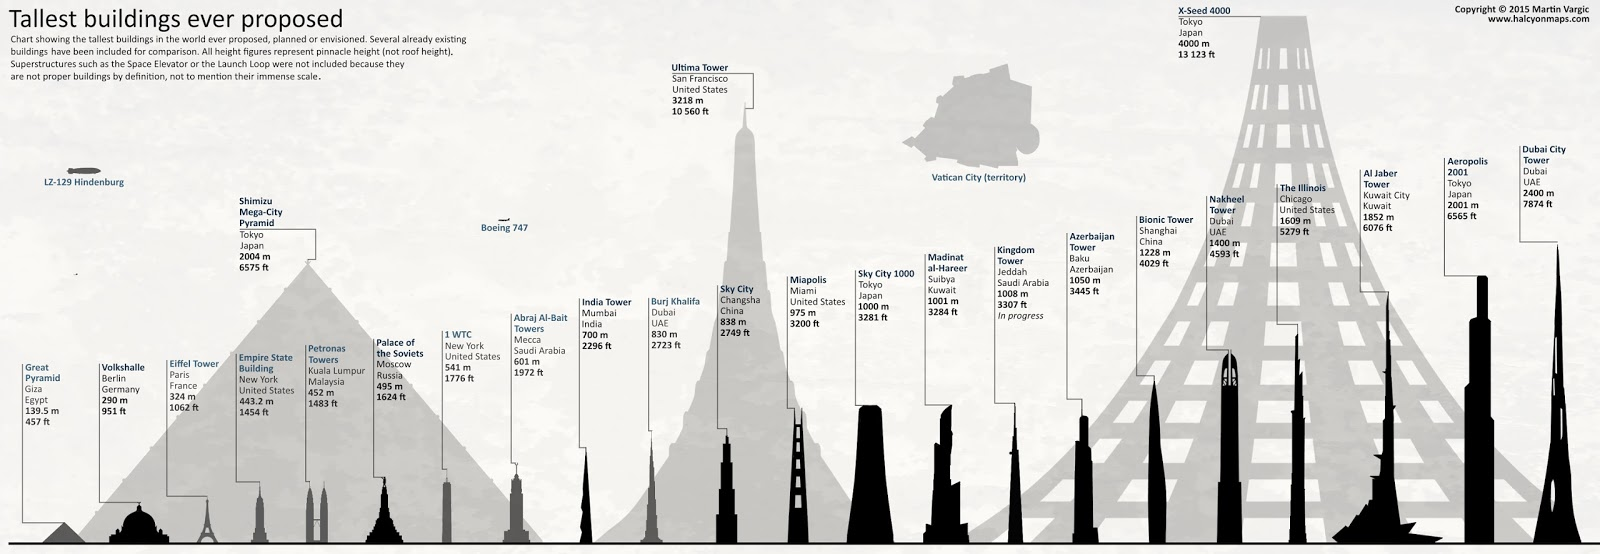 Tallest buildings ever proposed